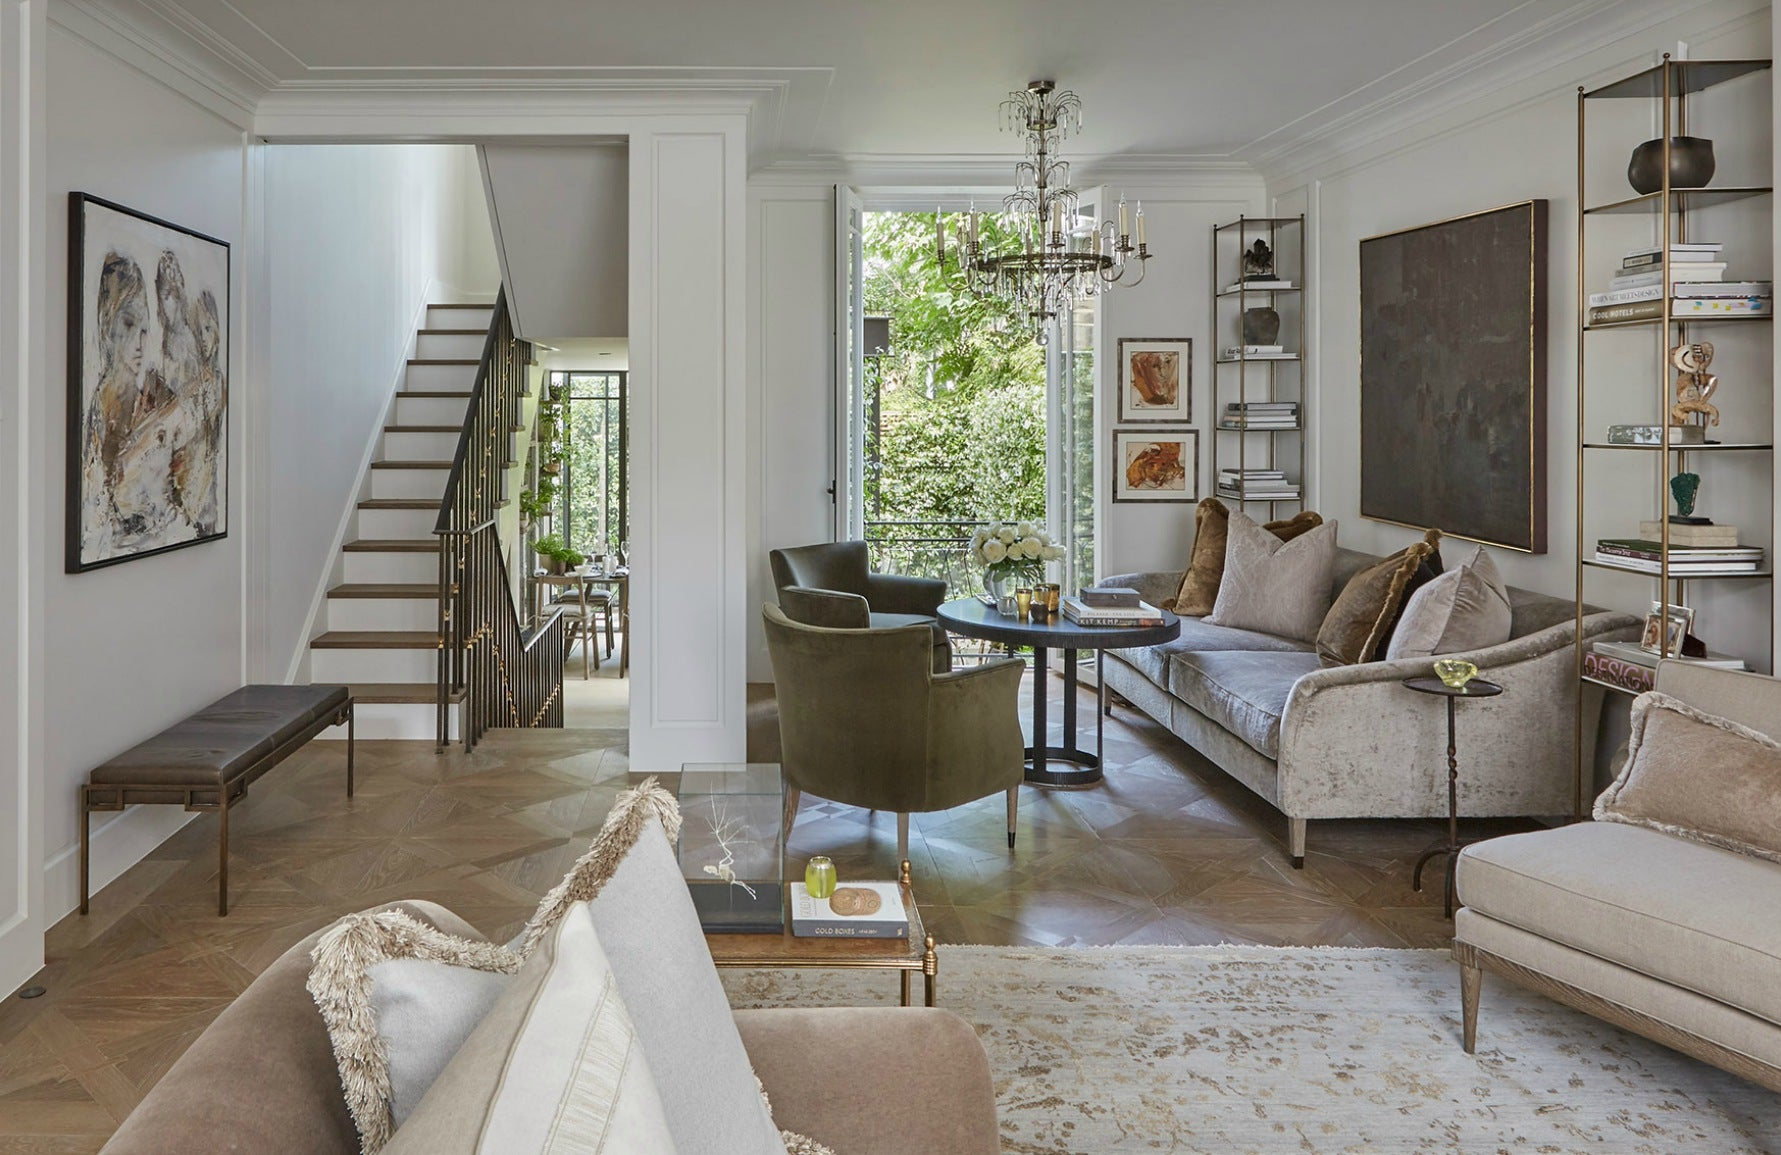 Meet The Designer | Louise Bradley Sitting Room | The Luxurist | LuxDeco.com